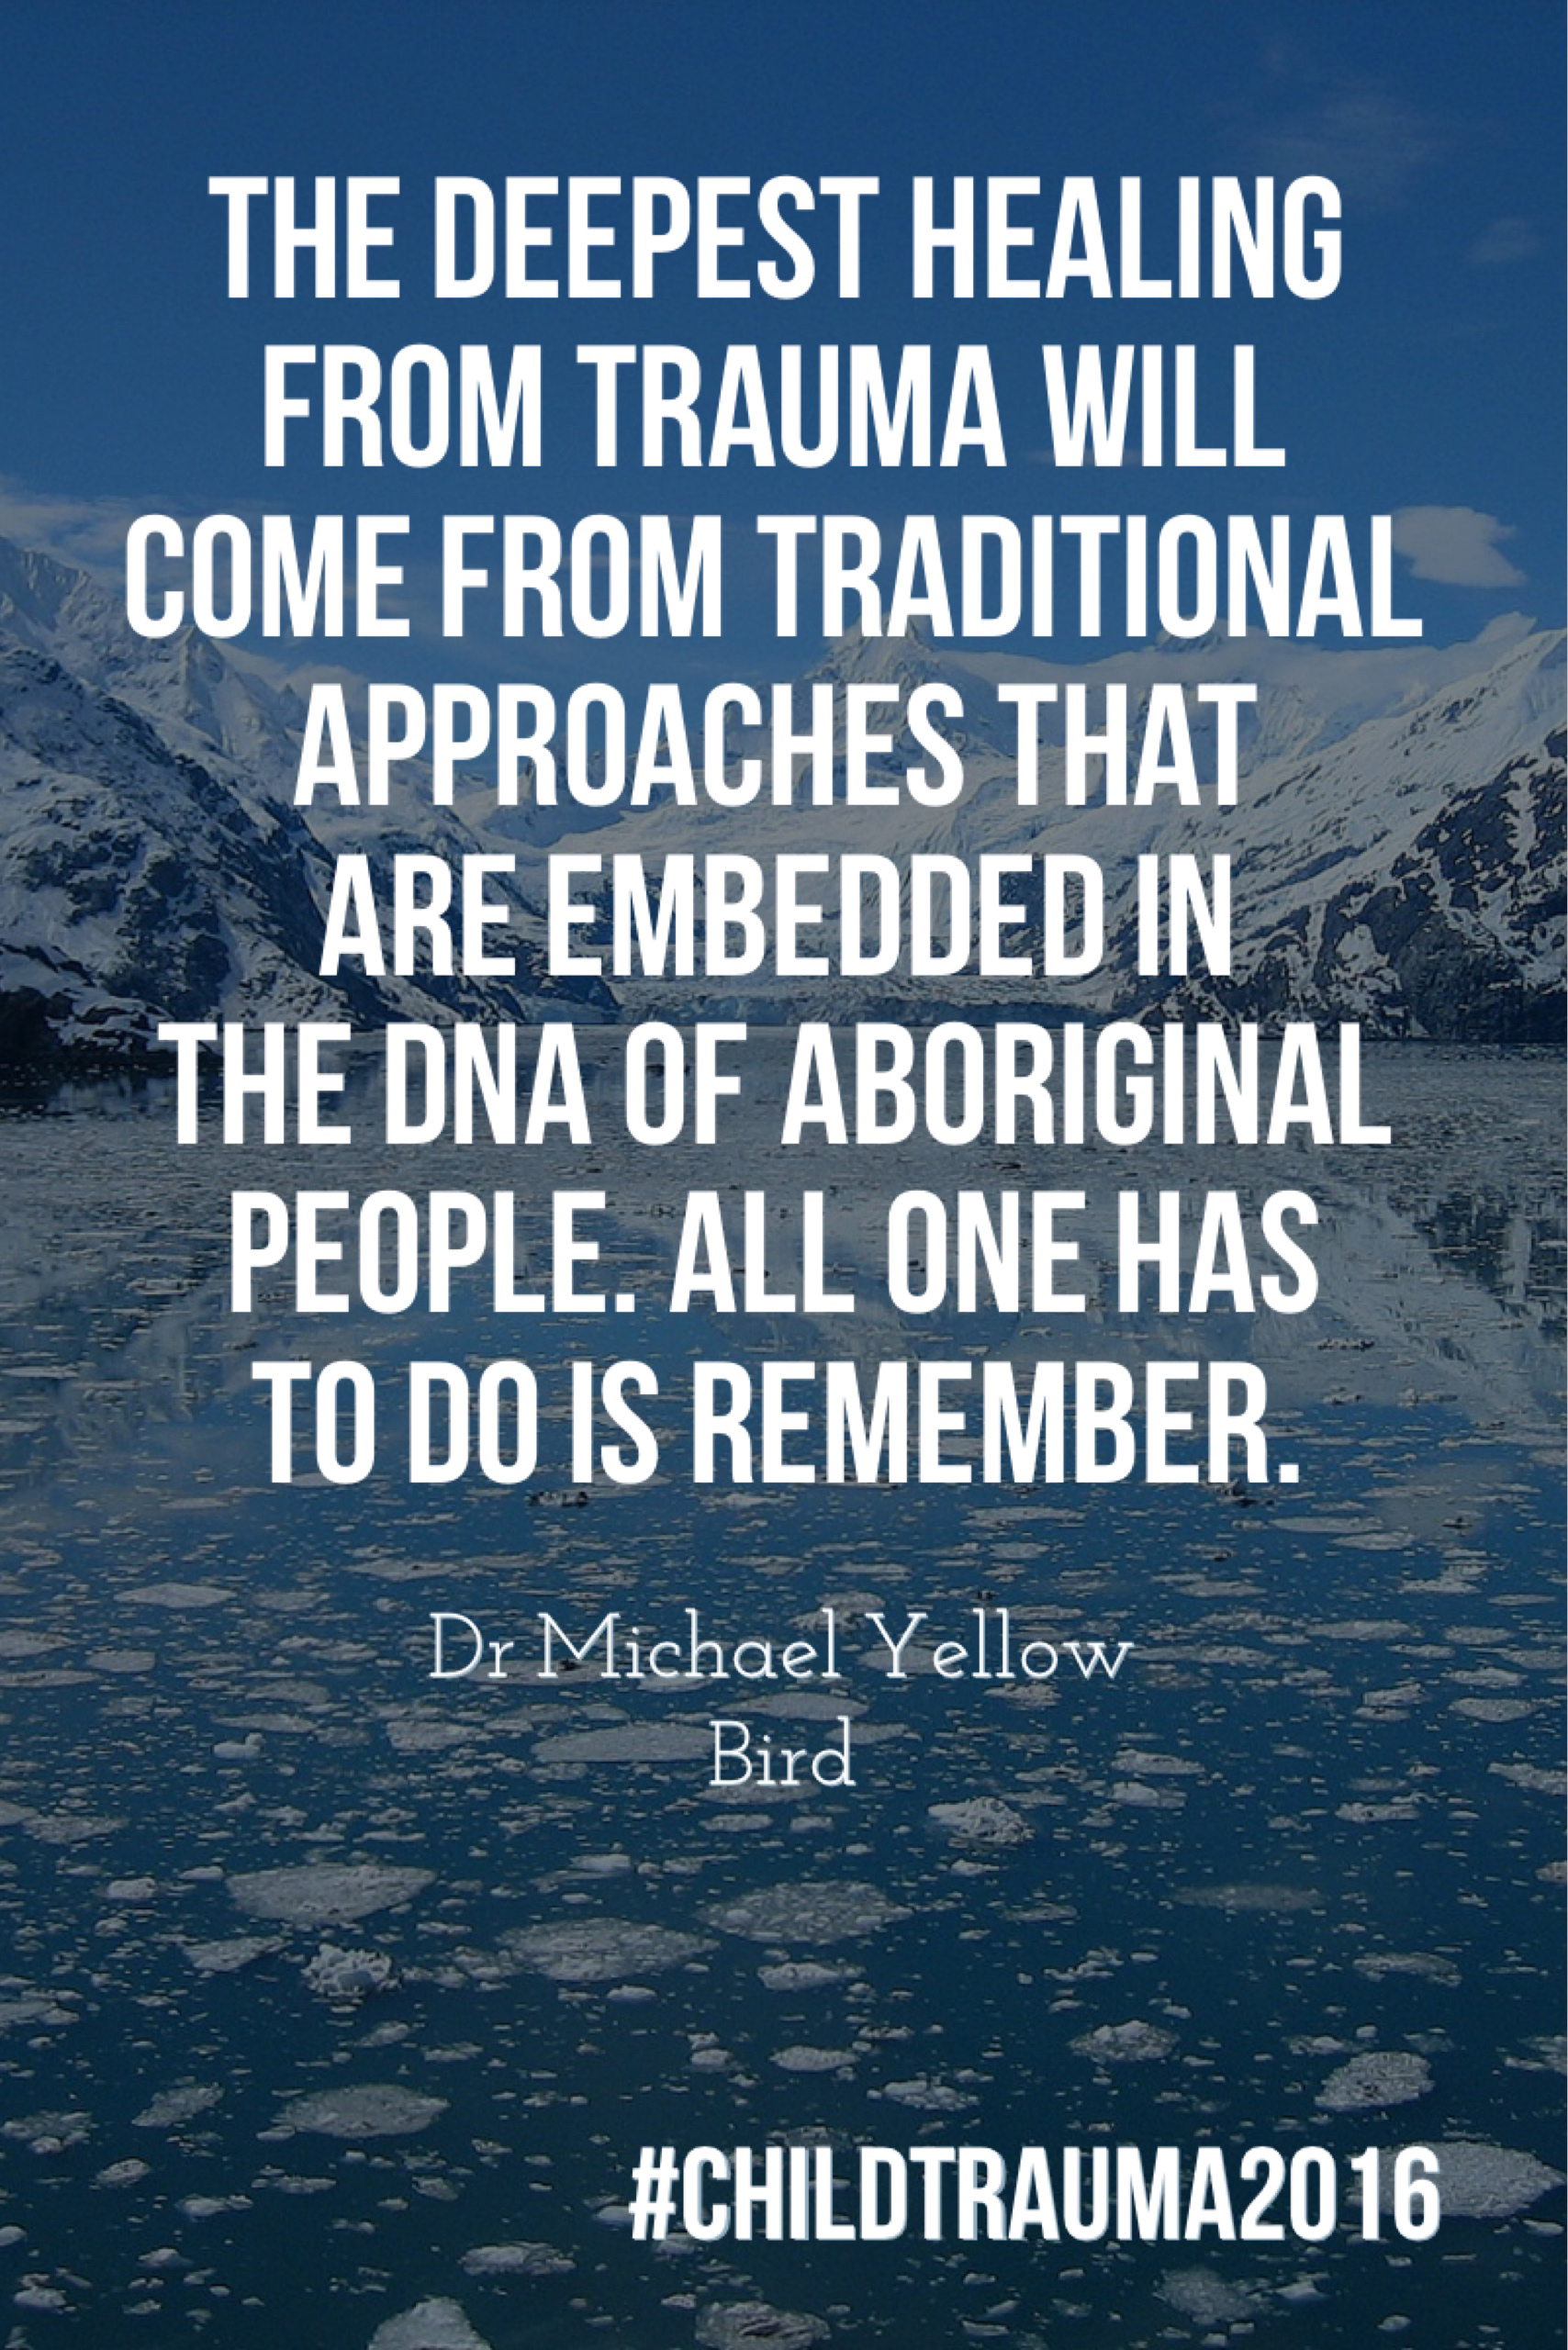 Dr Michael Yellow Bird